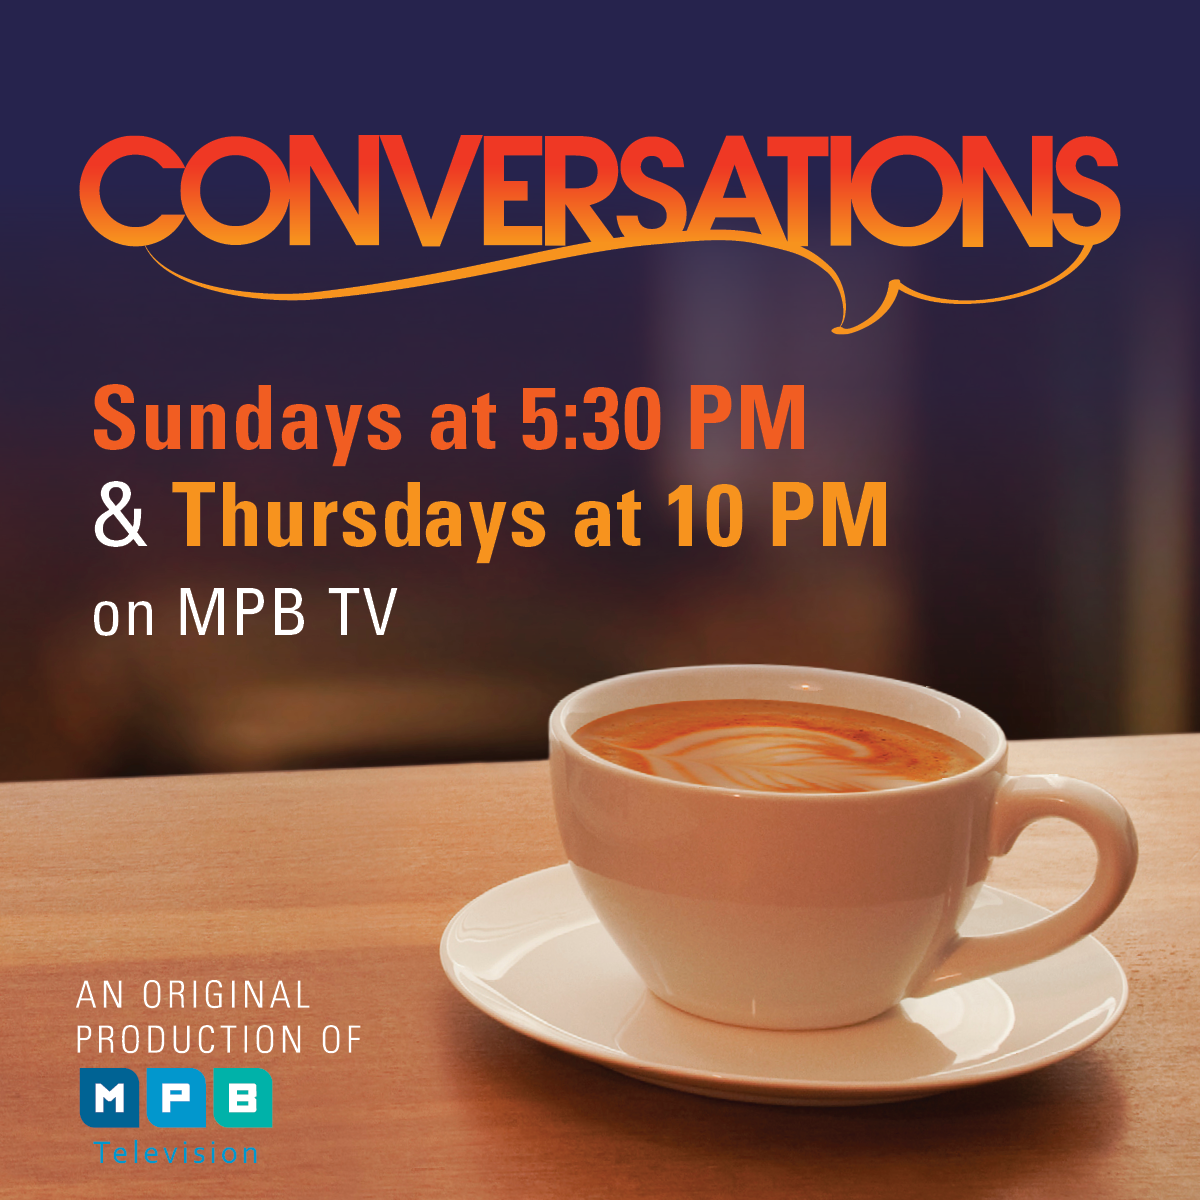 Watch Conversations Sundays at 5:30 p.m. on MPB TV